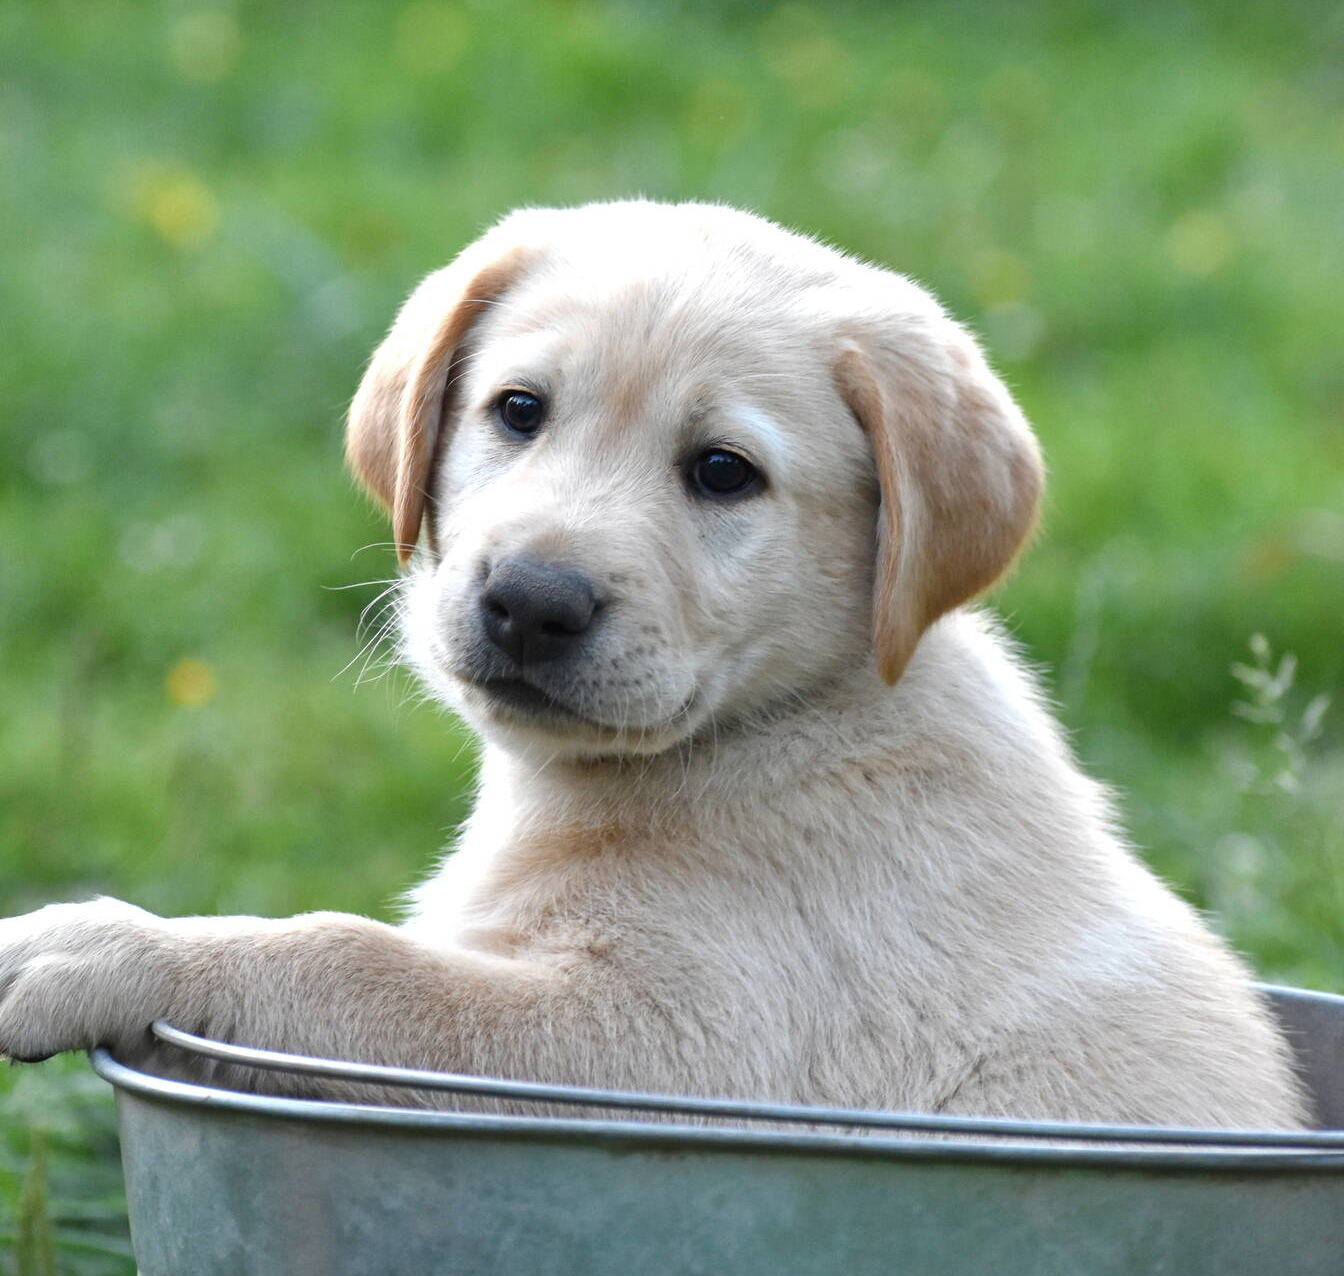 Yellow labrador puppies-2019-15.JPG